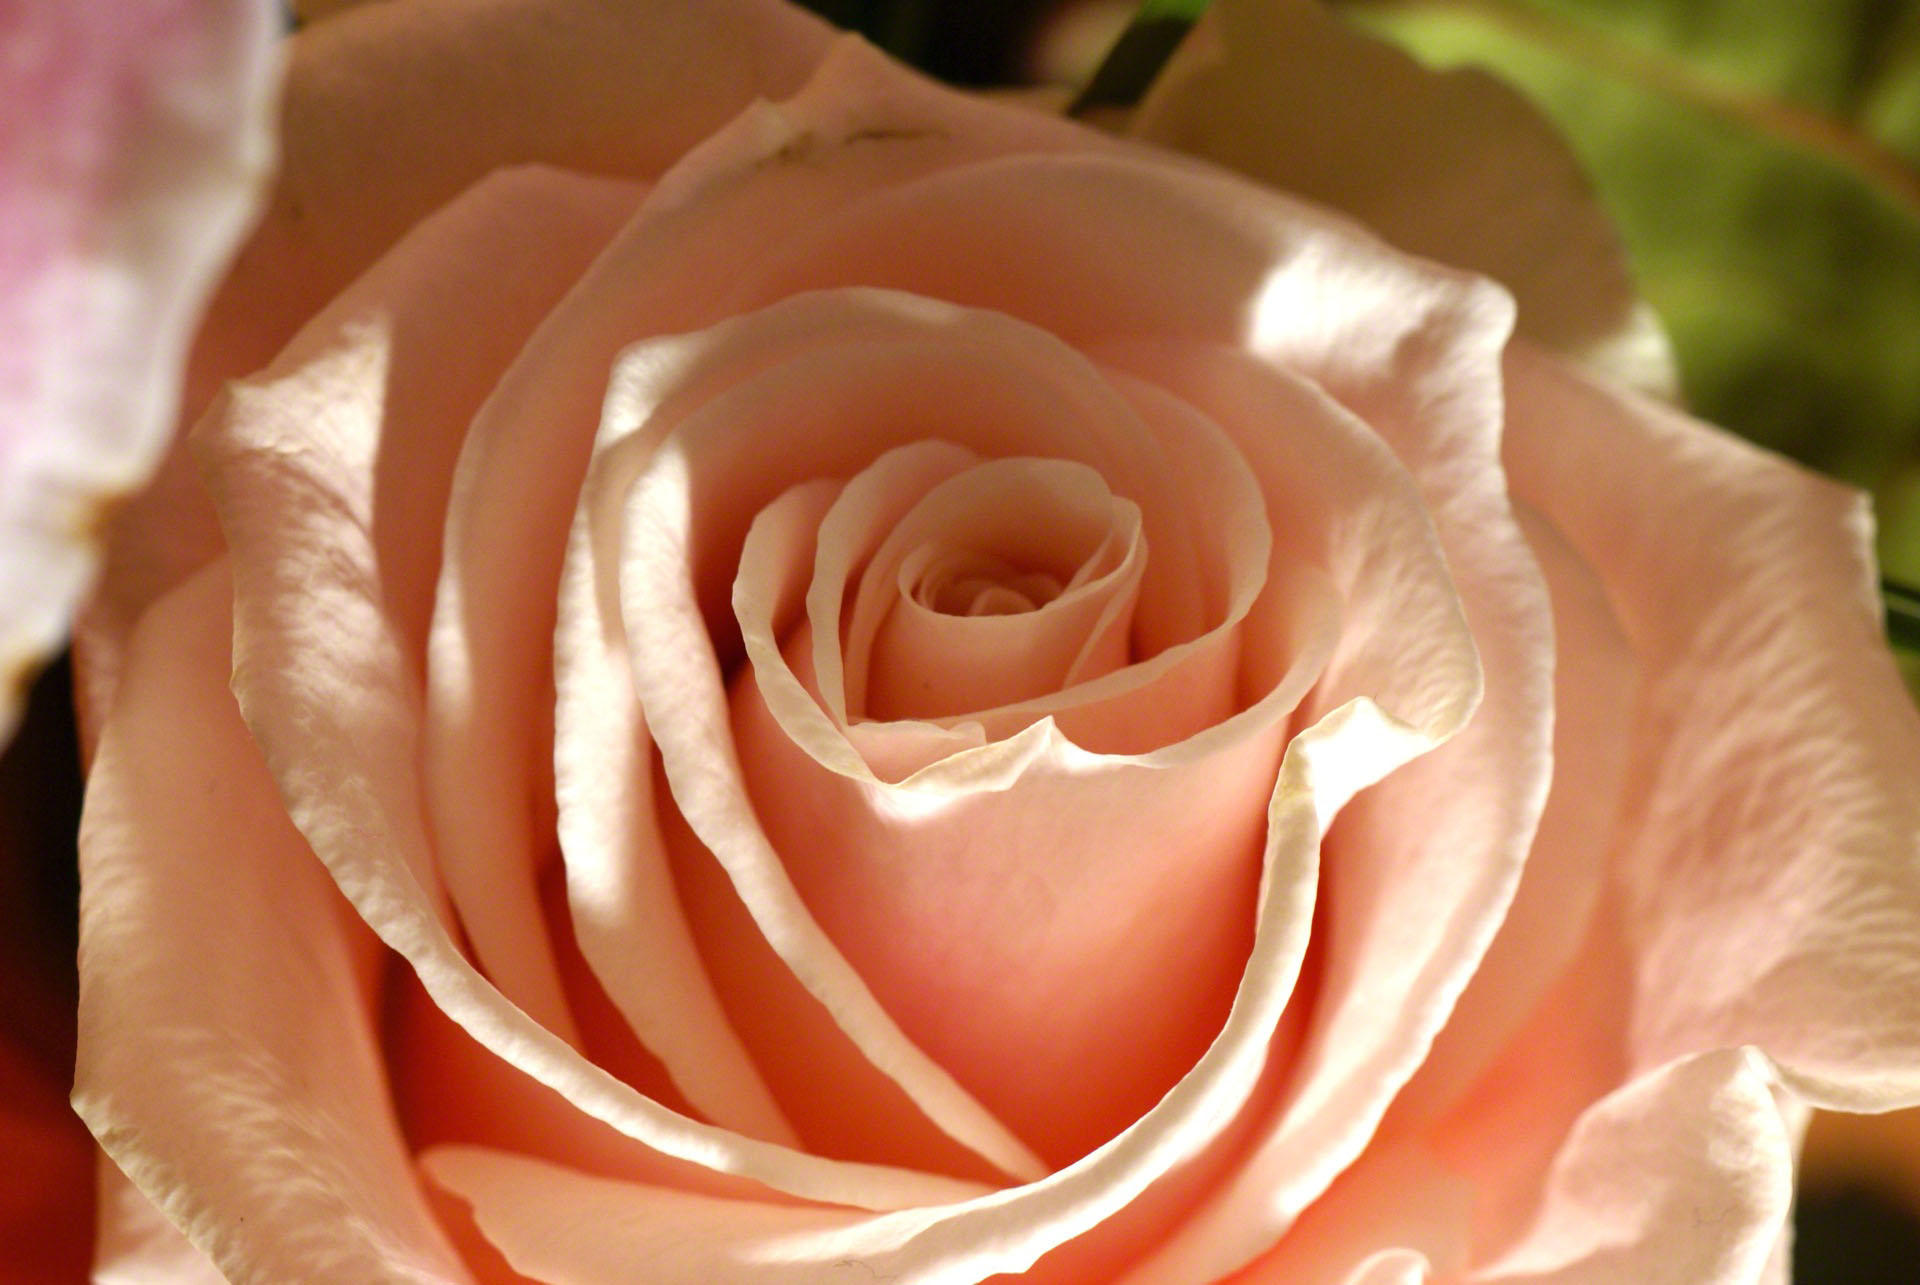 http://www.fabiovisentin.com/photography/photo/12/peach-rose-macro-dsc01131.jpg